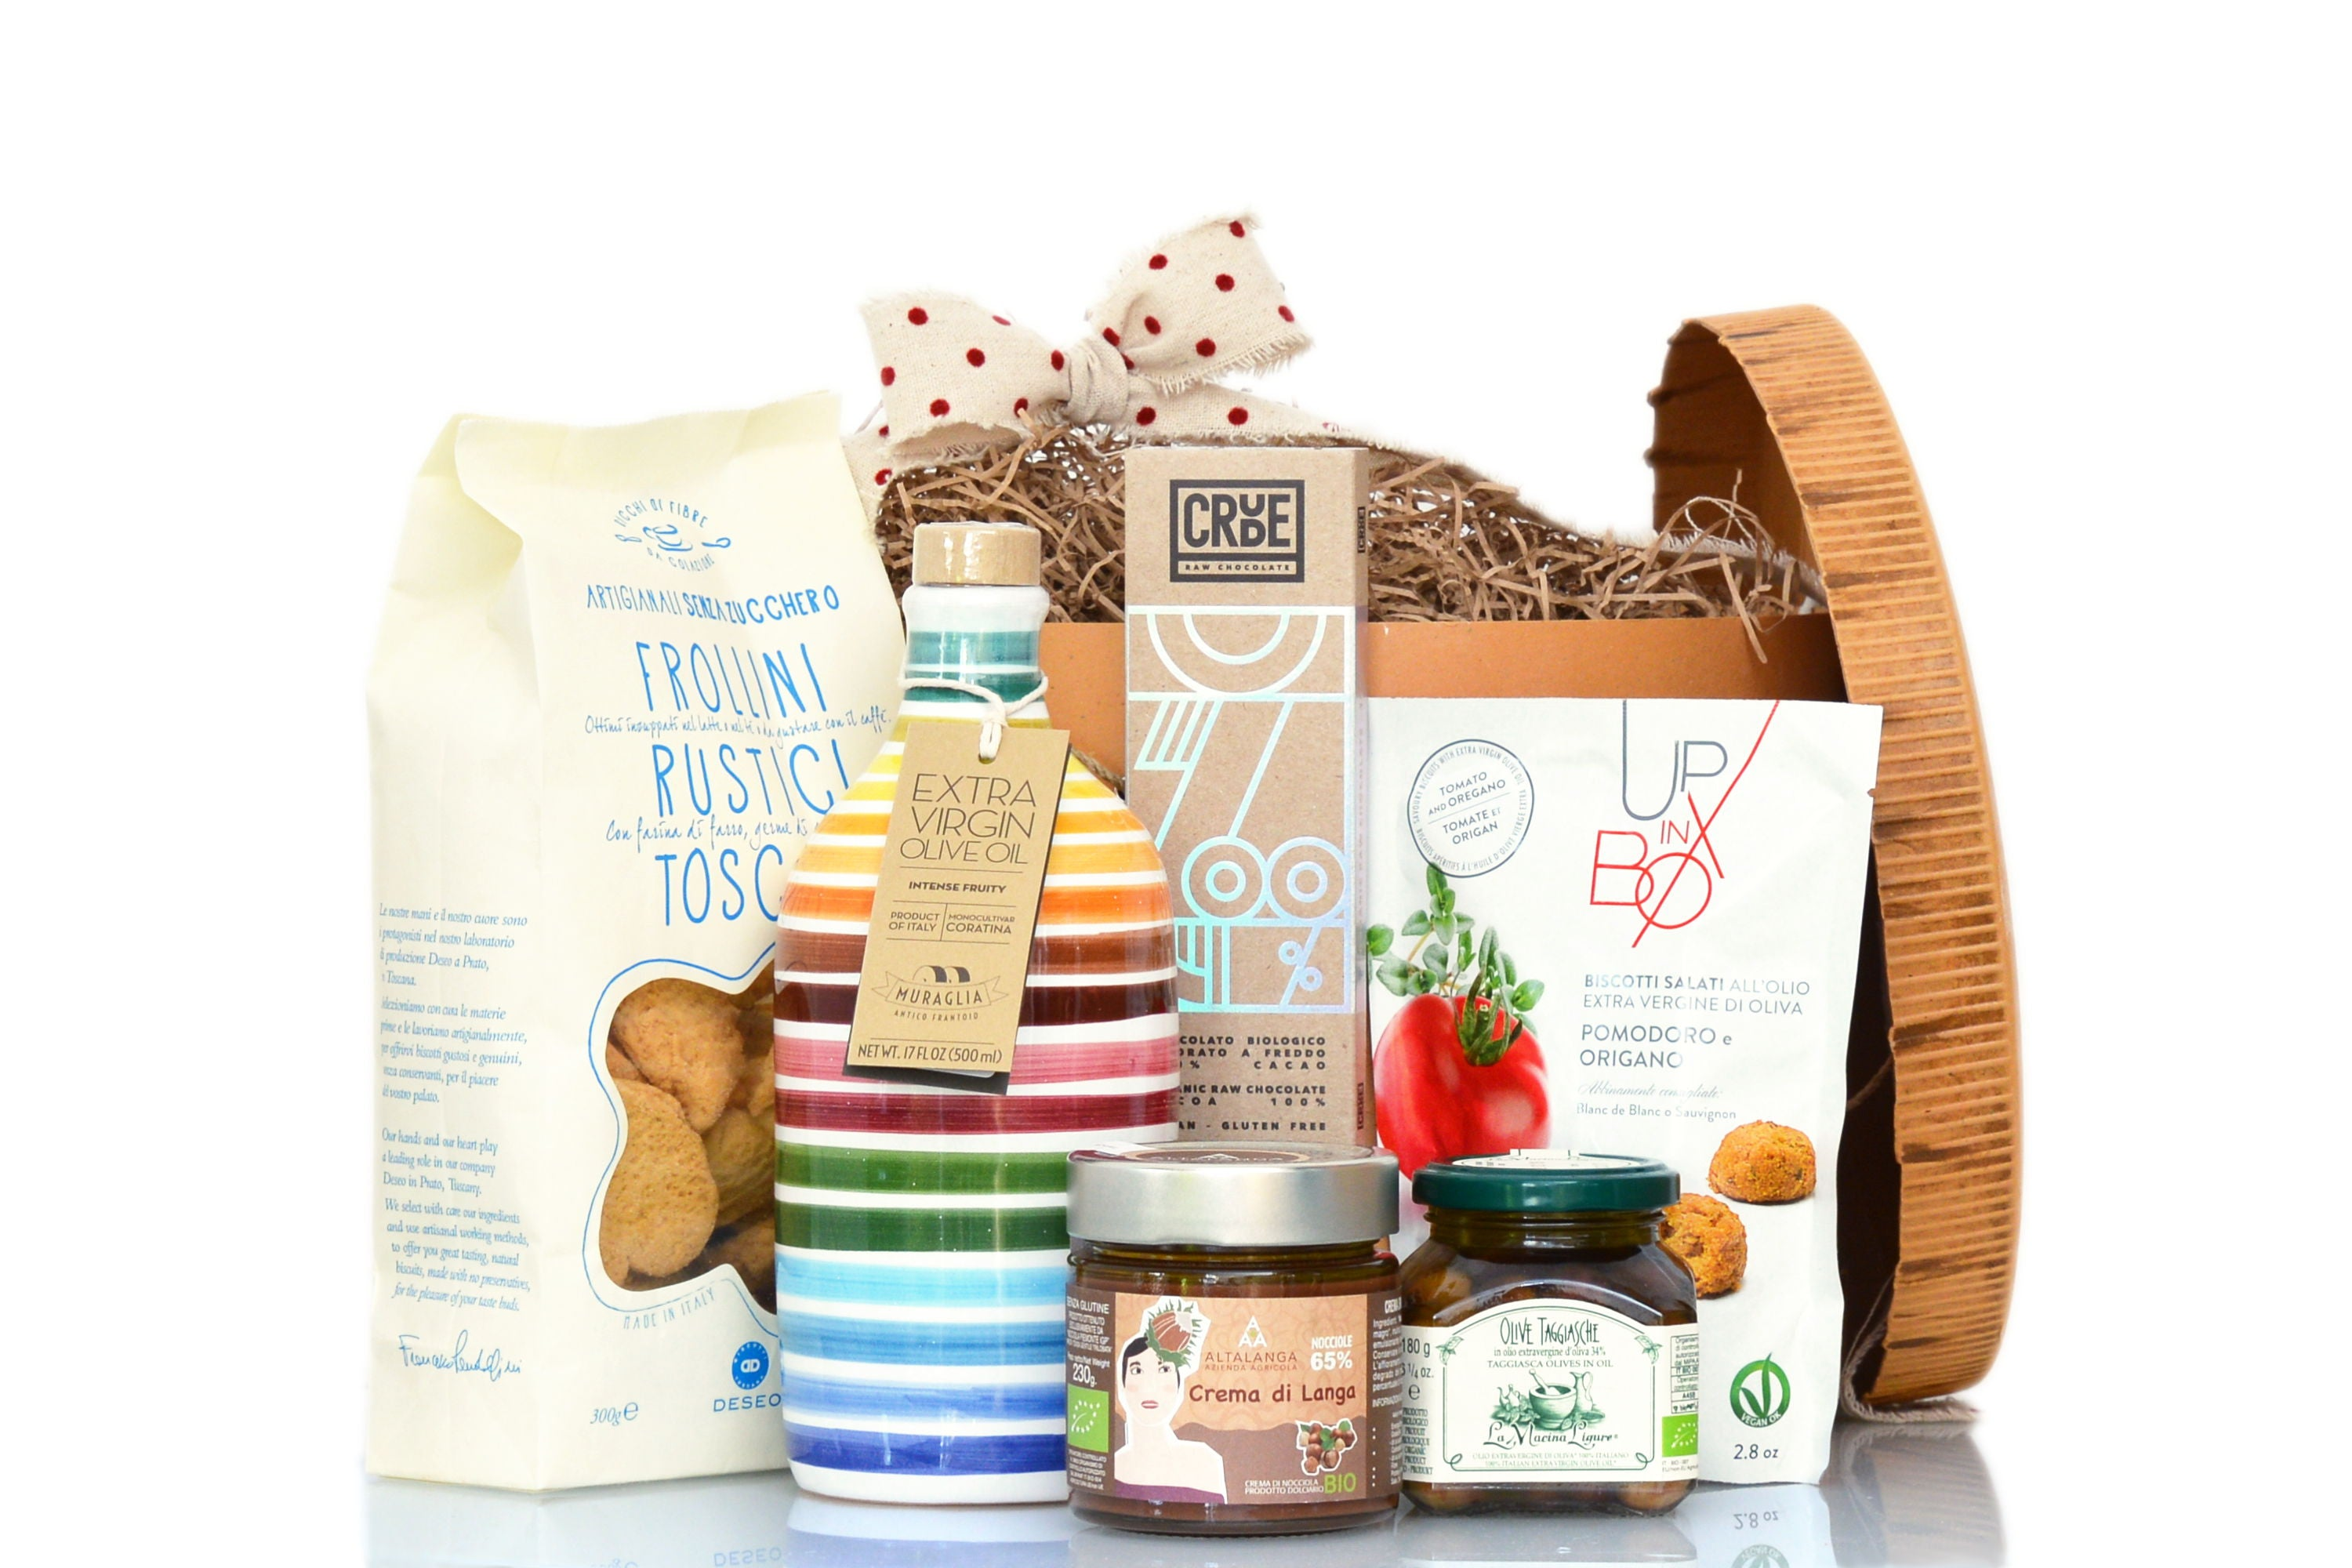 The sugar free hamper artisan italian food exclusive at the red sugar free hamper authentic italian food gift box exclusive to the red beetle negle Image collections